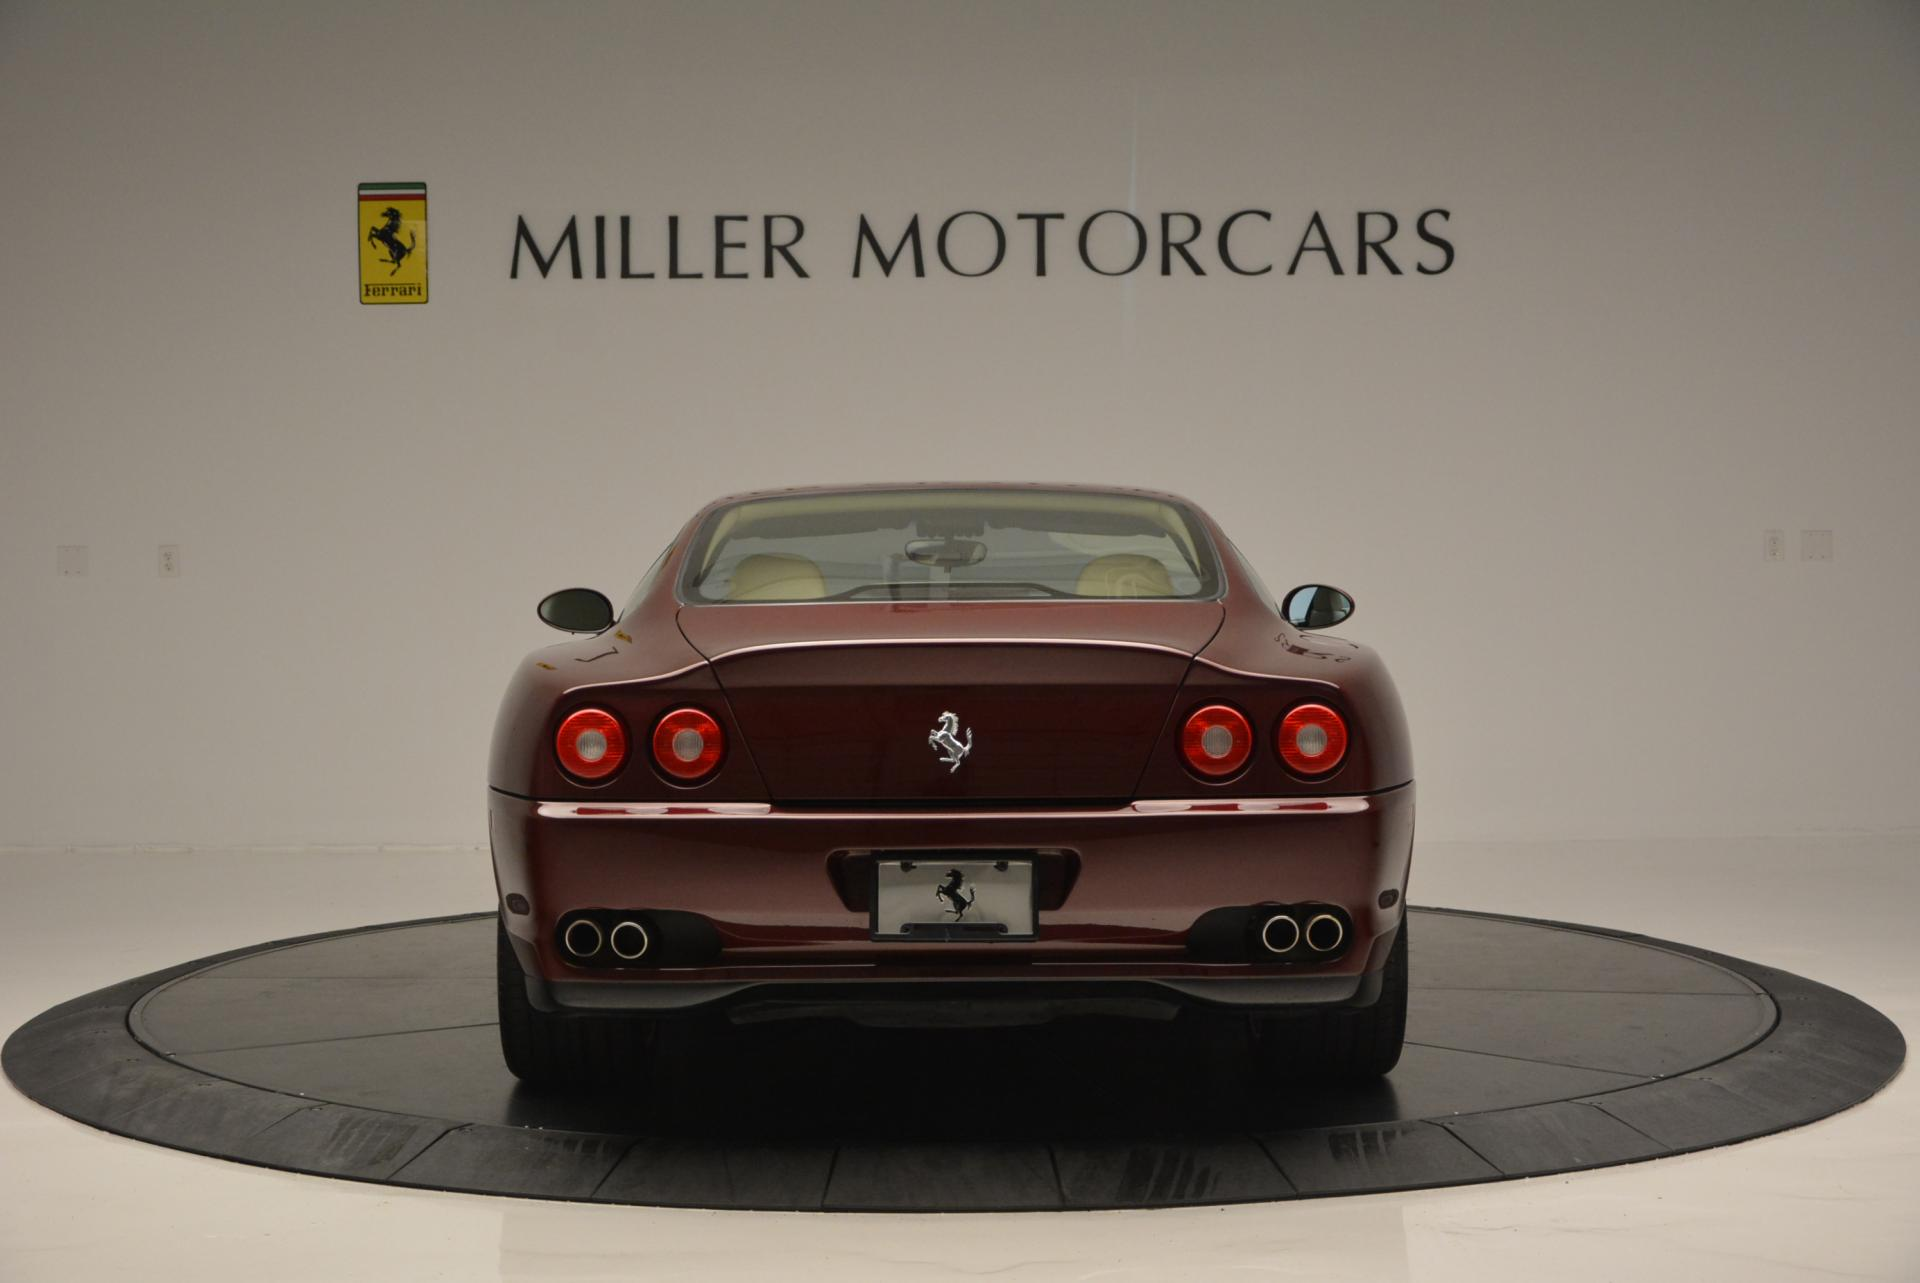 Used 2003 Ferrari 575M Maranello 6-Speed Manual For Sale In Westport, CT 143_p6